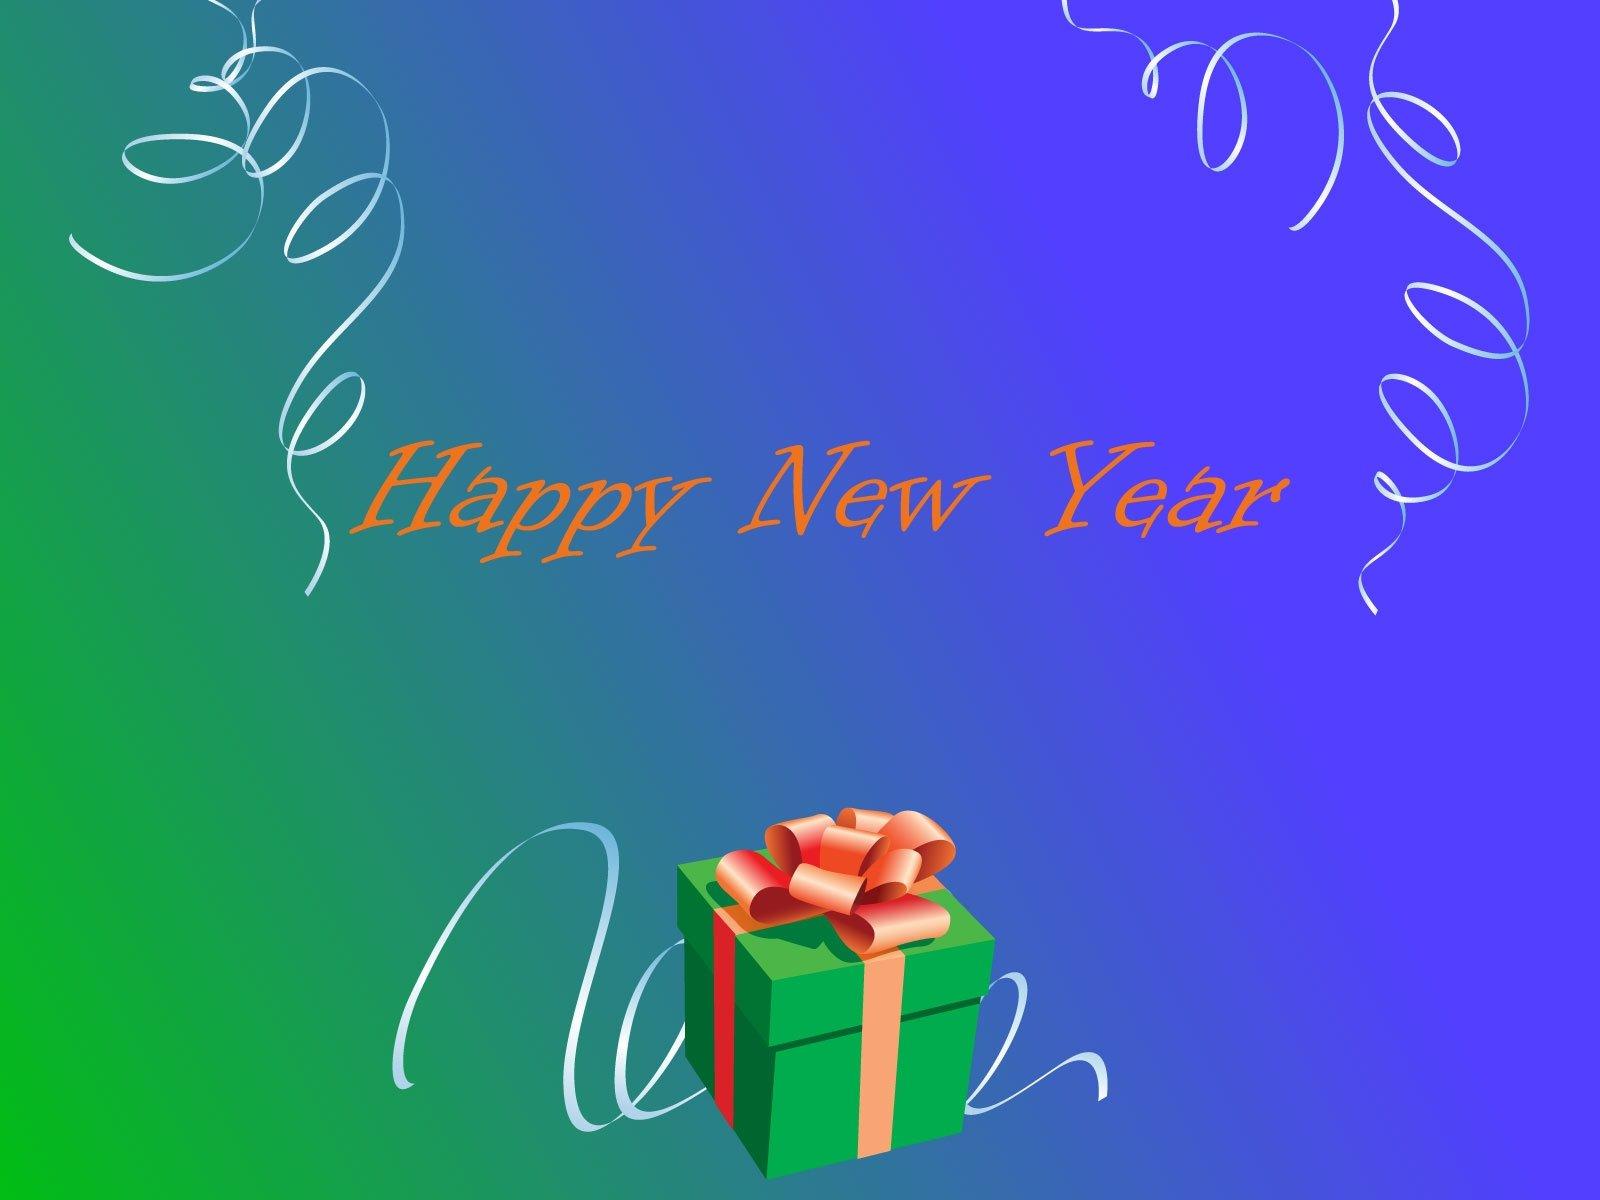 Most Beautiful Happy New Year Wishes Greetings Cards 1600x1200